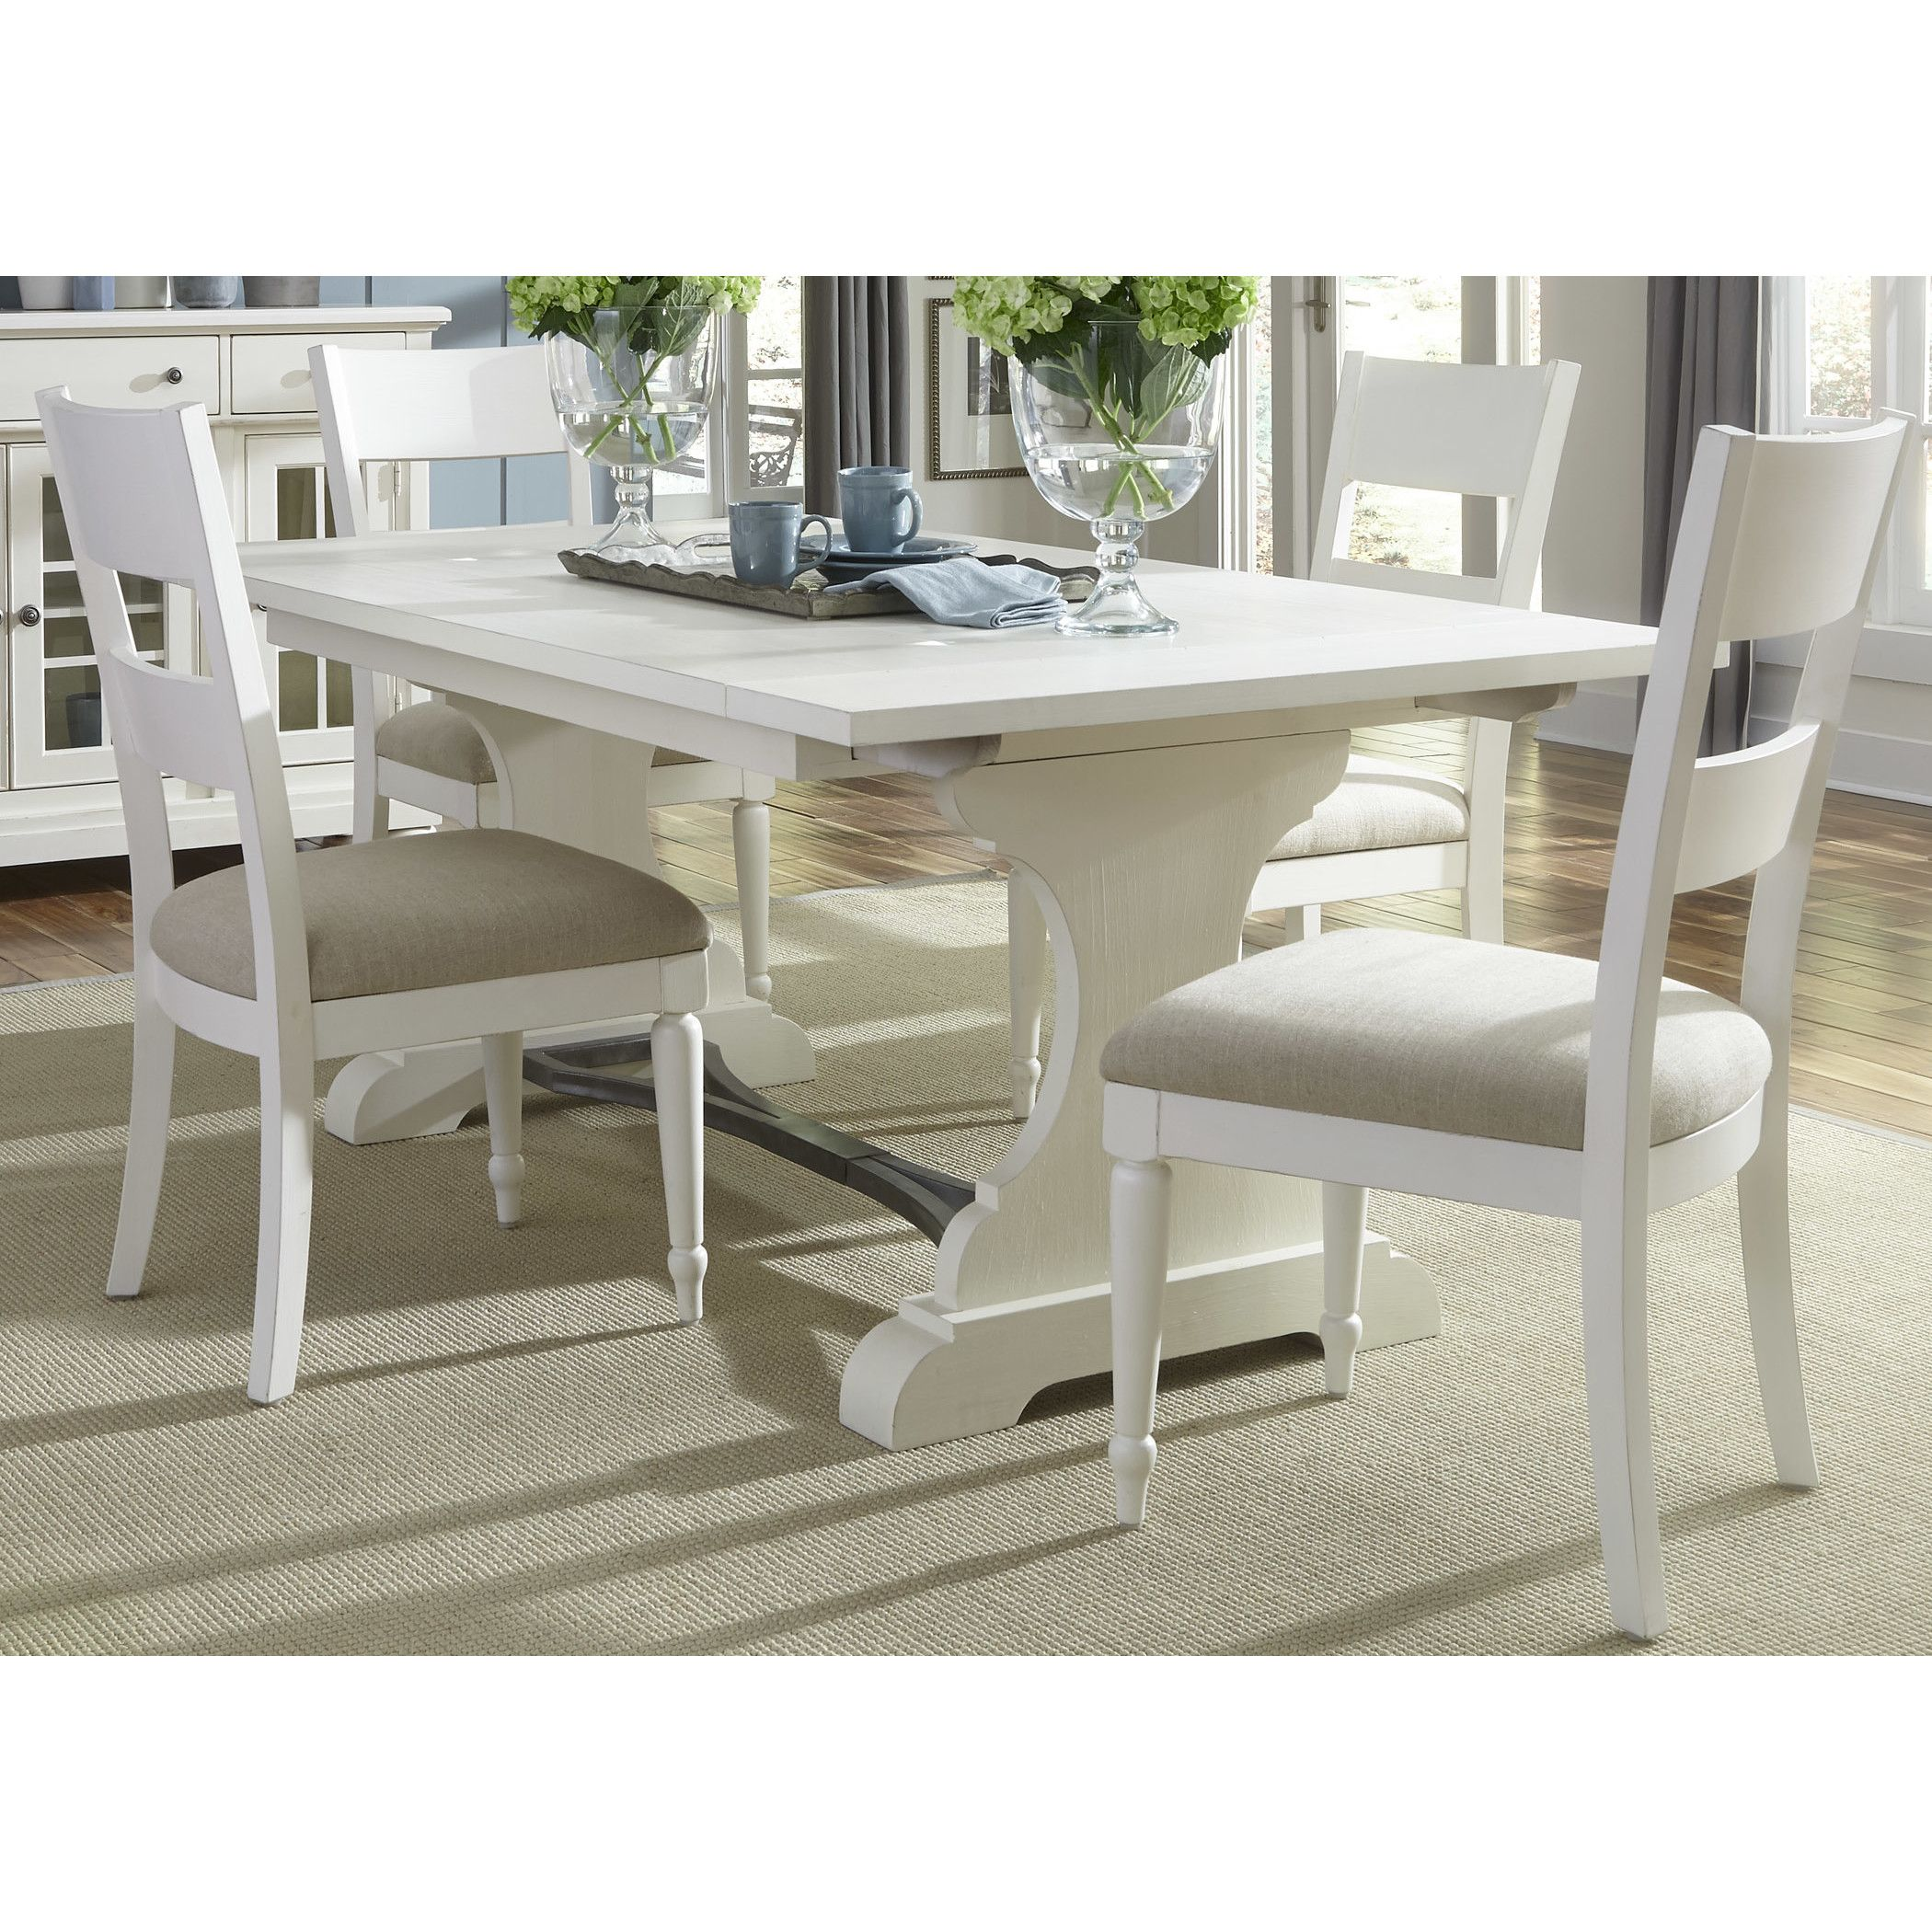 5a863223553f4f8fd6204e0b7aac78b2 - Better Homes And Gardens Maddox 5 Piece Dining Set